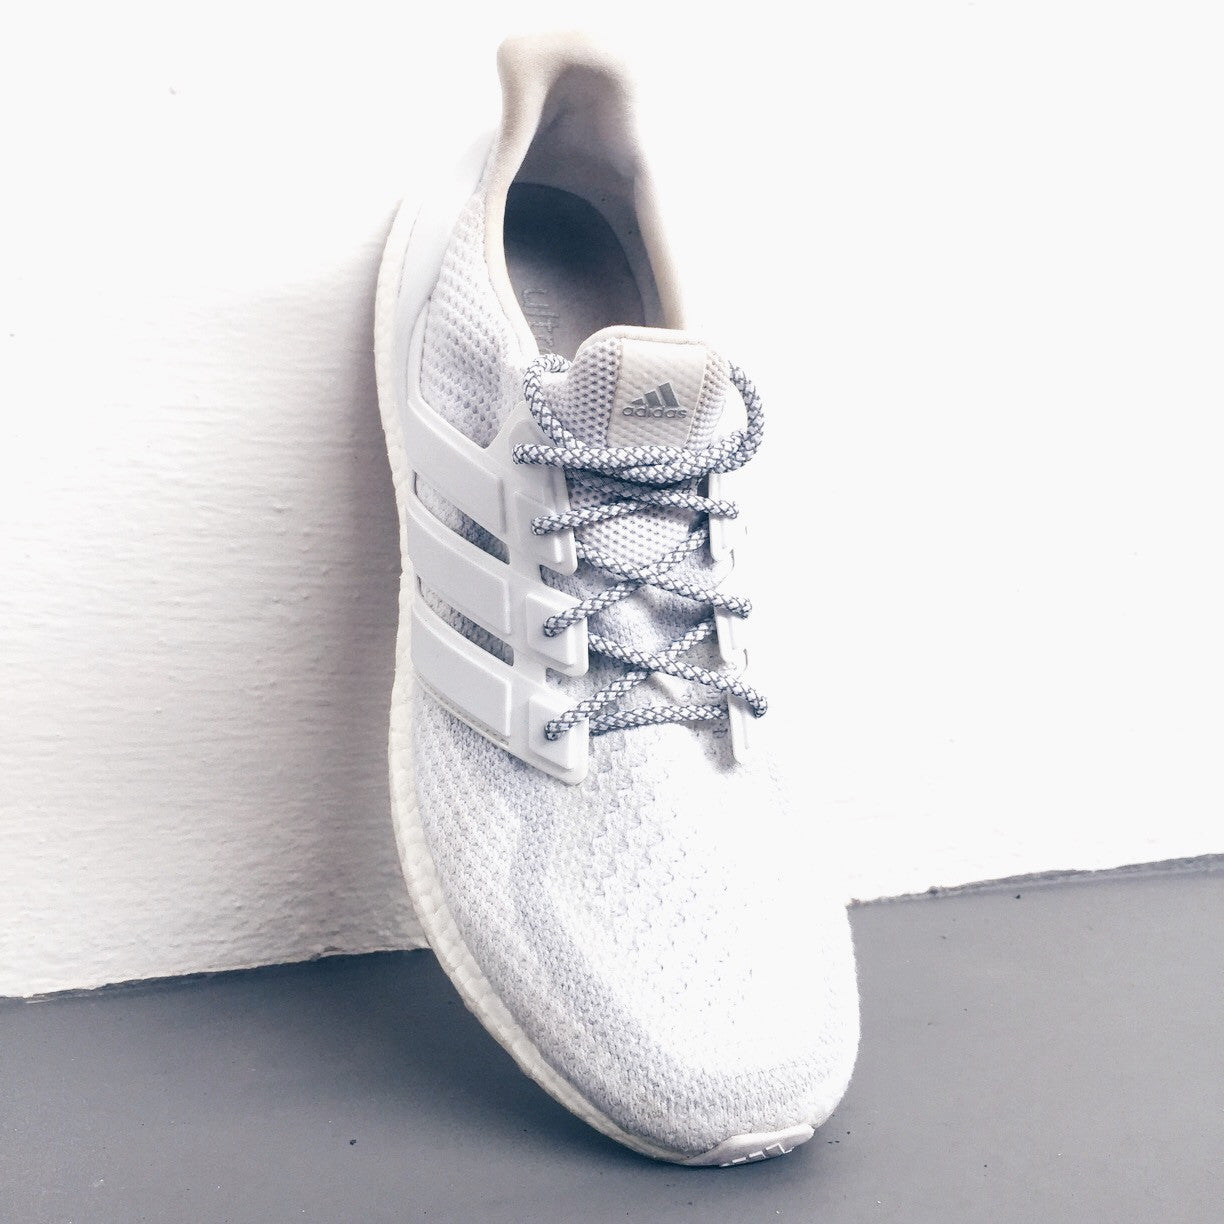 finest selection 534b6 93844 How To Lace Your Sneakers   Swap Your Shoe Laces   ADIDAS Ultra Boost 2.0  Triple